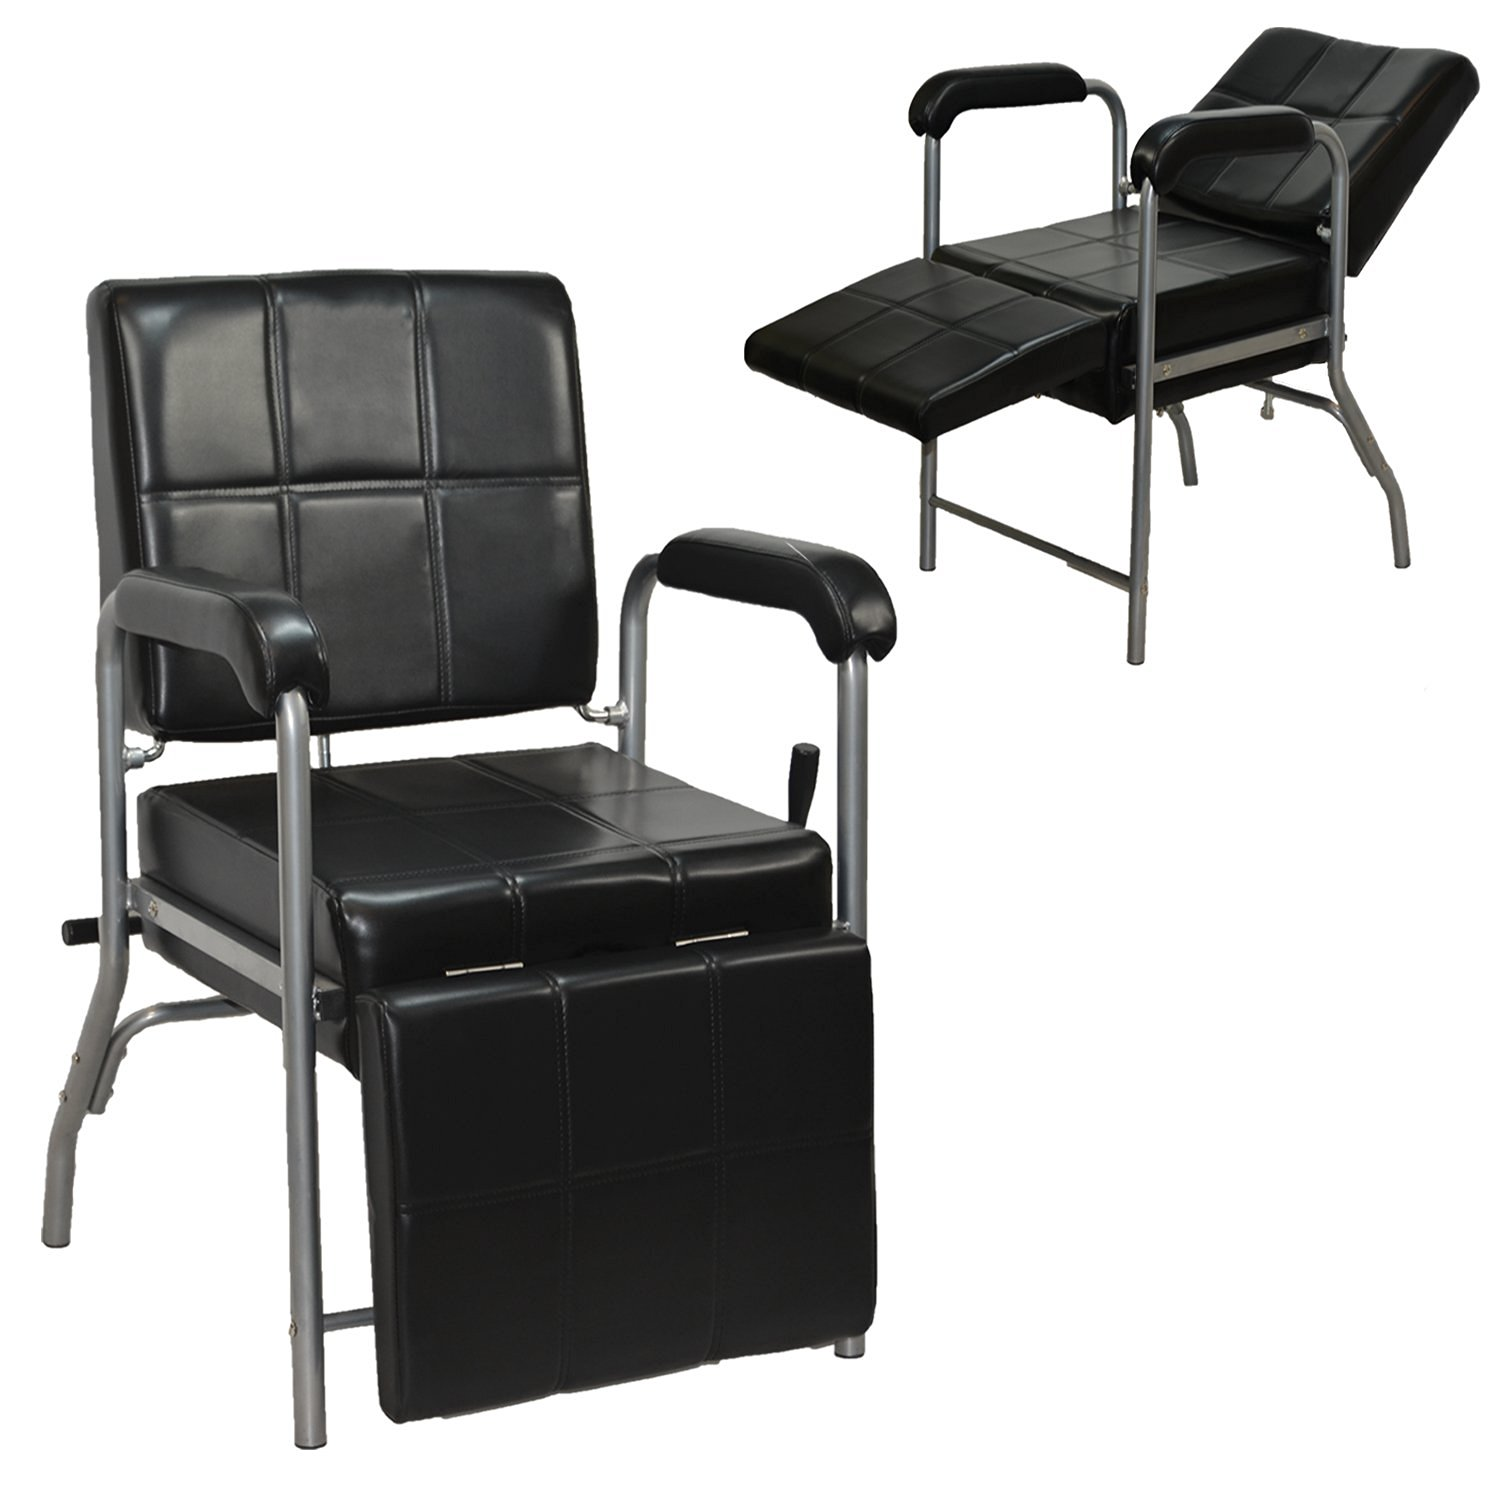 LCL Beauty Black Deluxe Reclining Shampoo Chair with Legrest